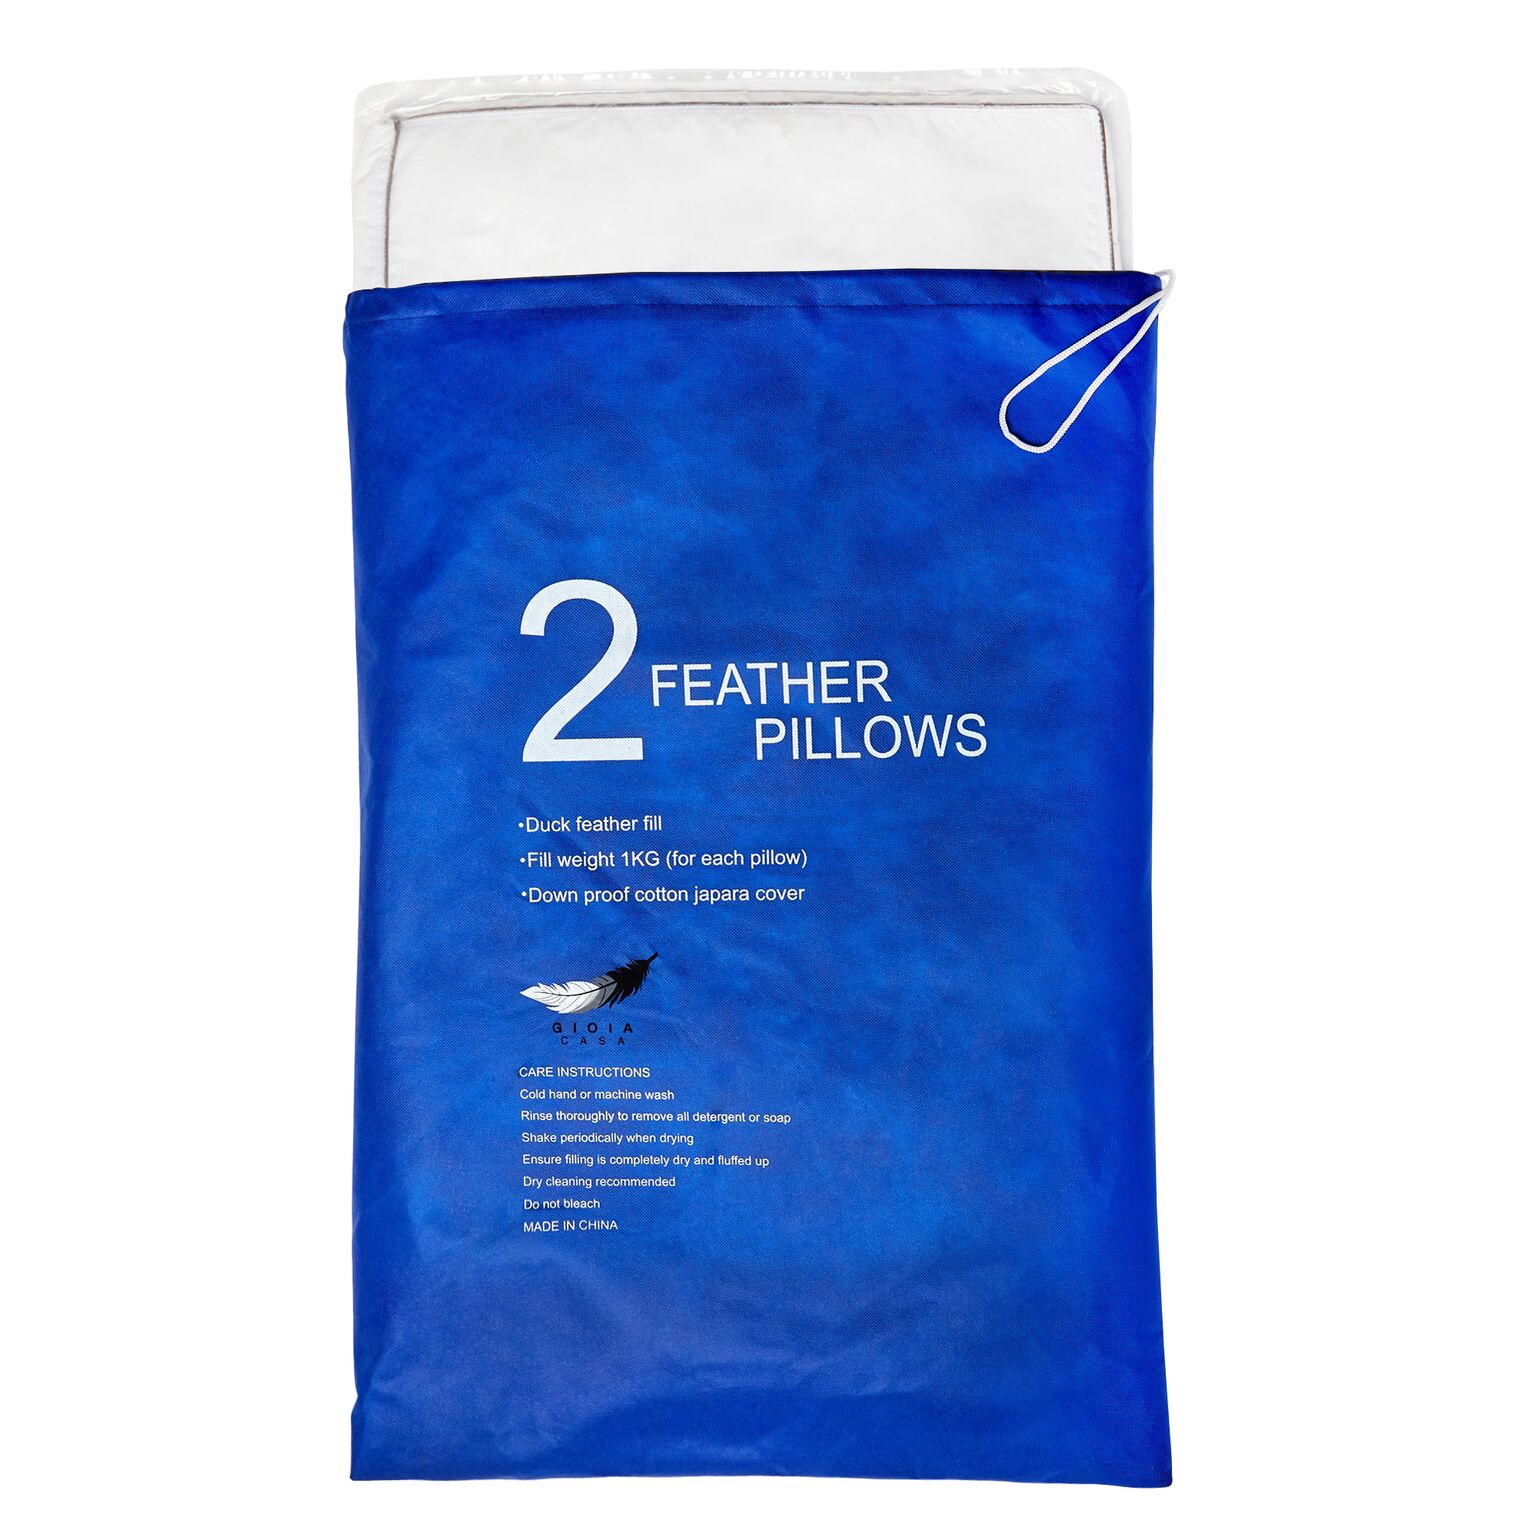 Twin pack feather pillow 1kg gioia casa for Drying feather pillows